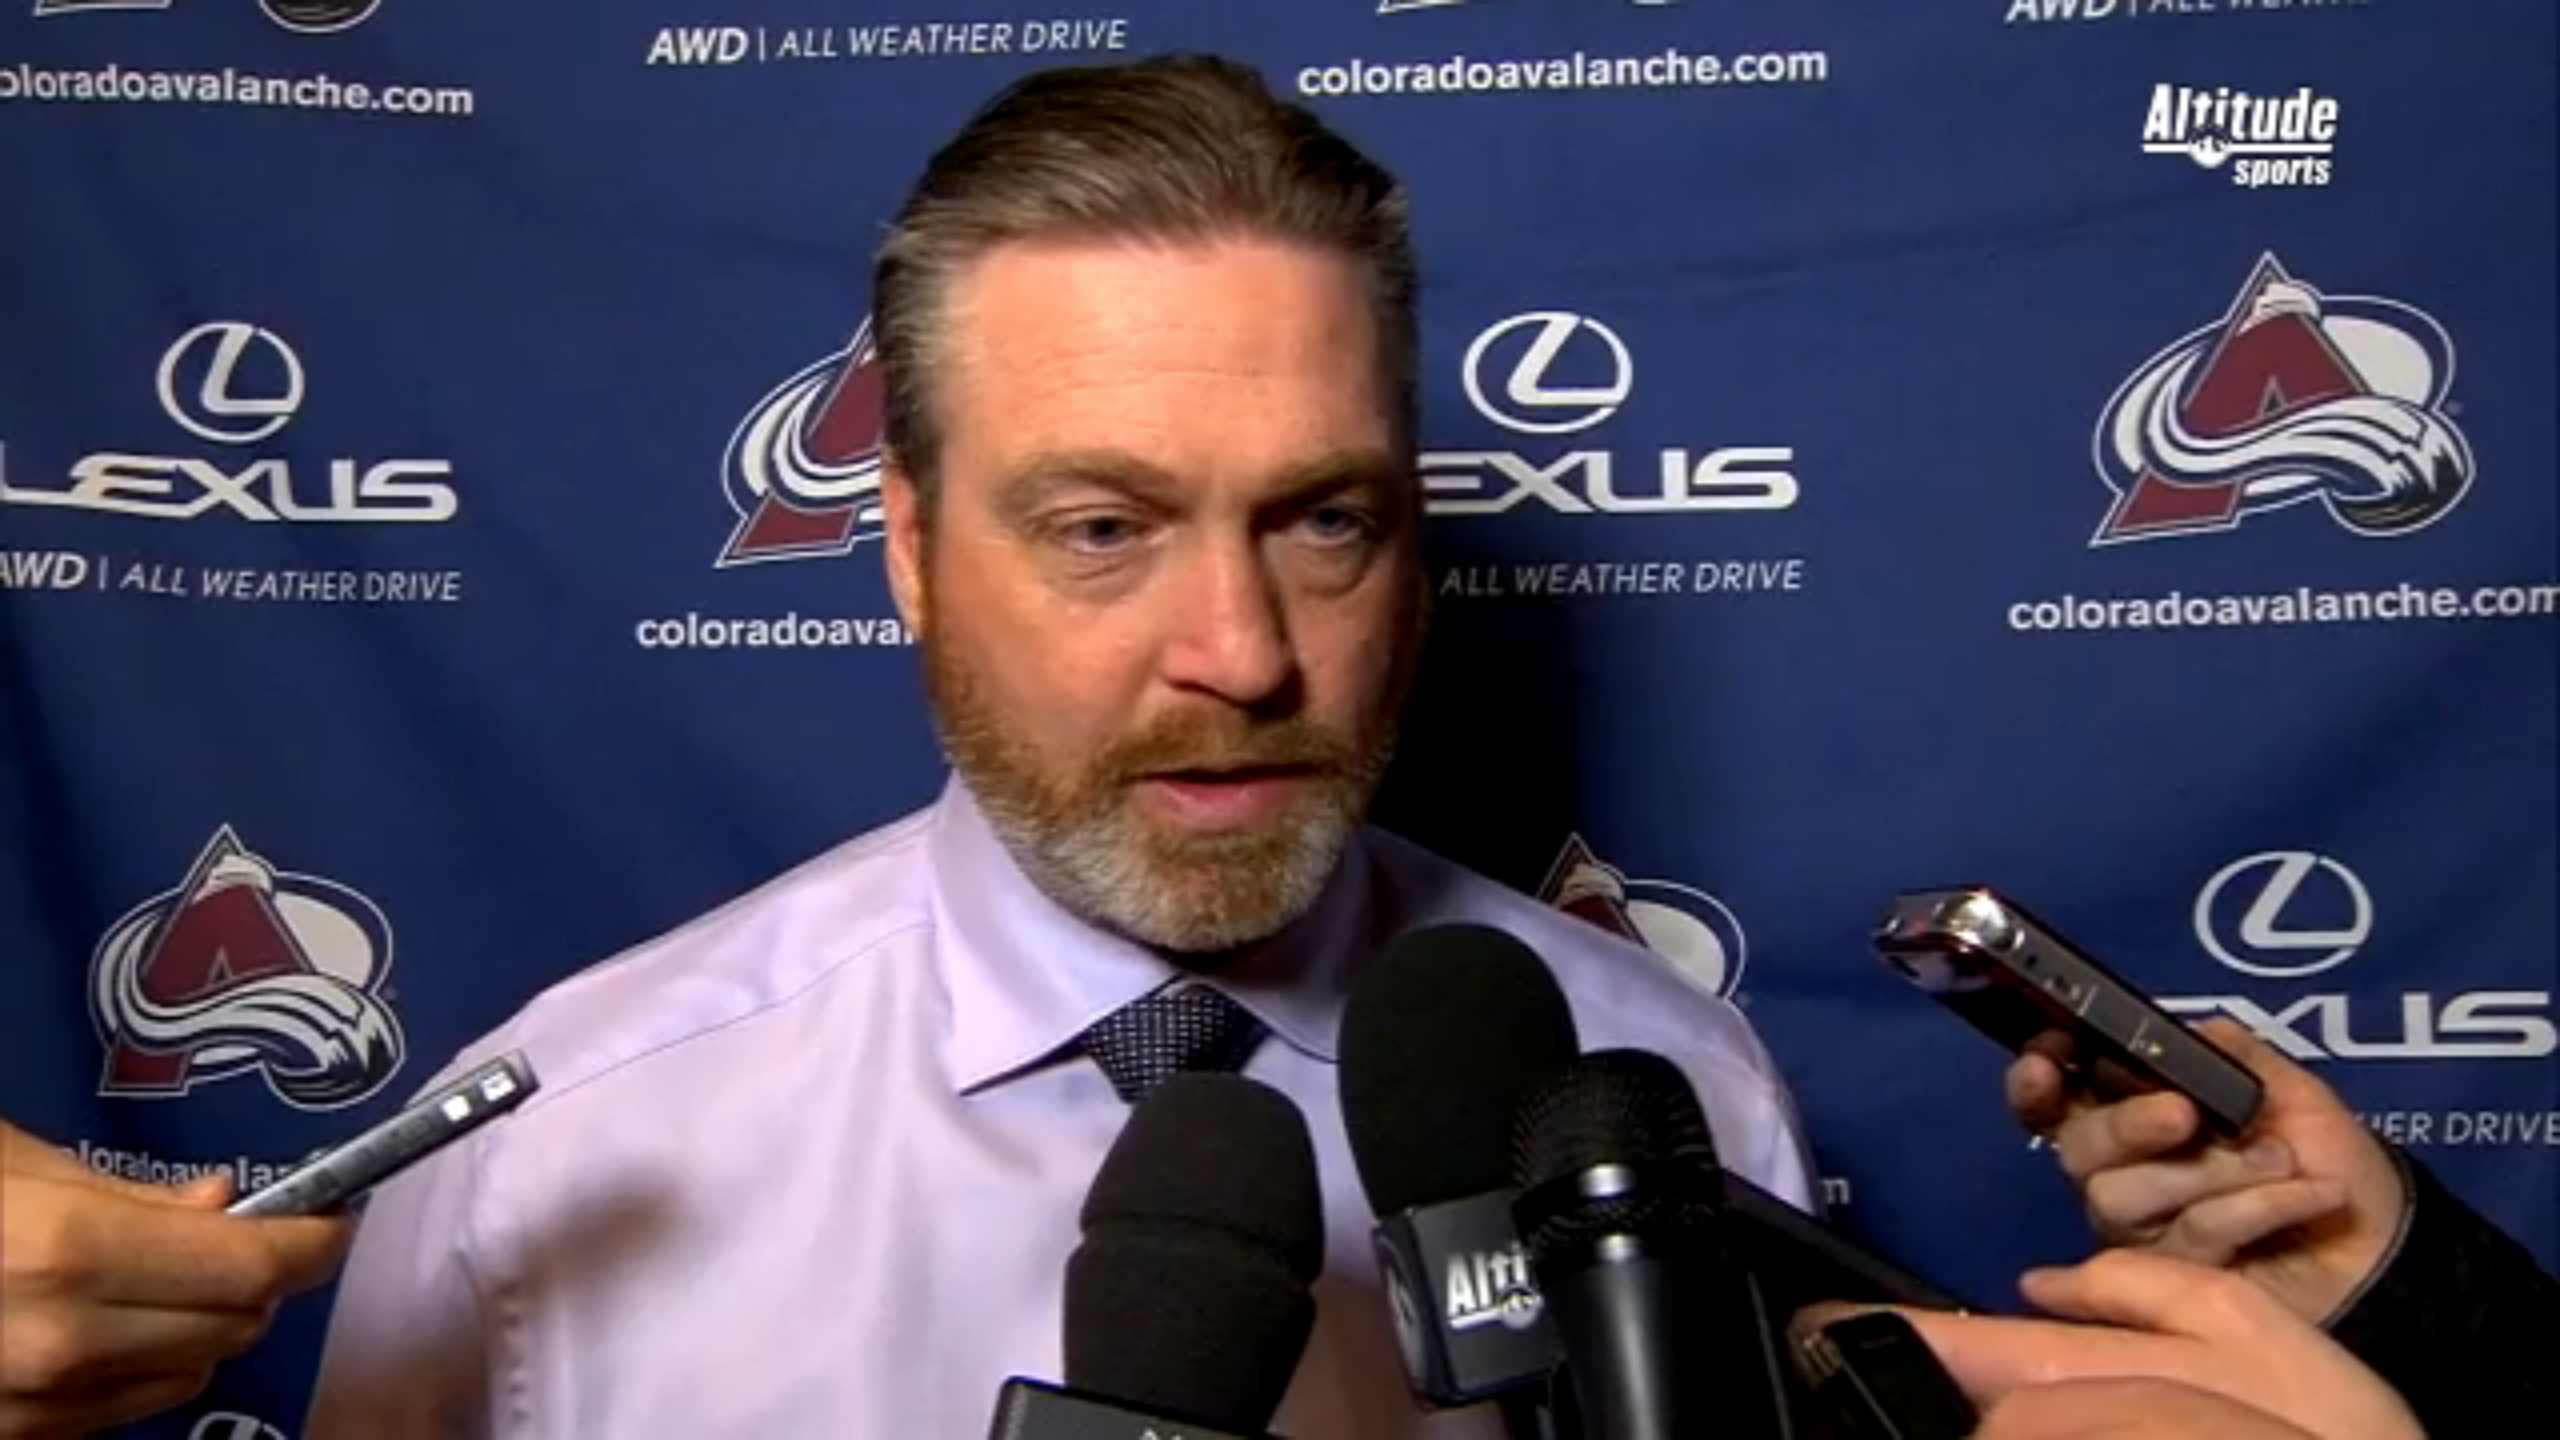 Patrick-Roy-Post-Game-031616.jpg